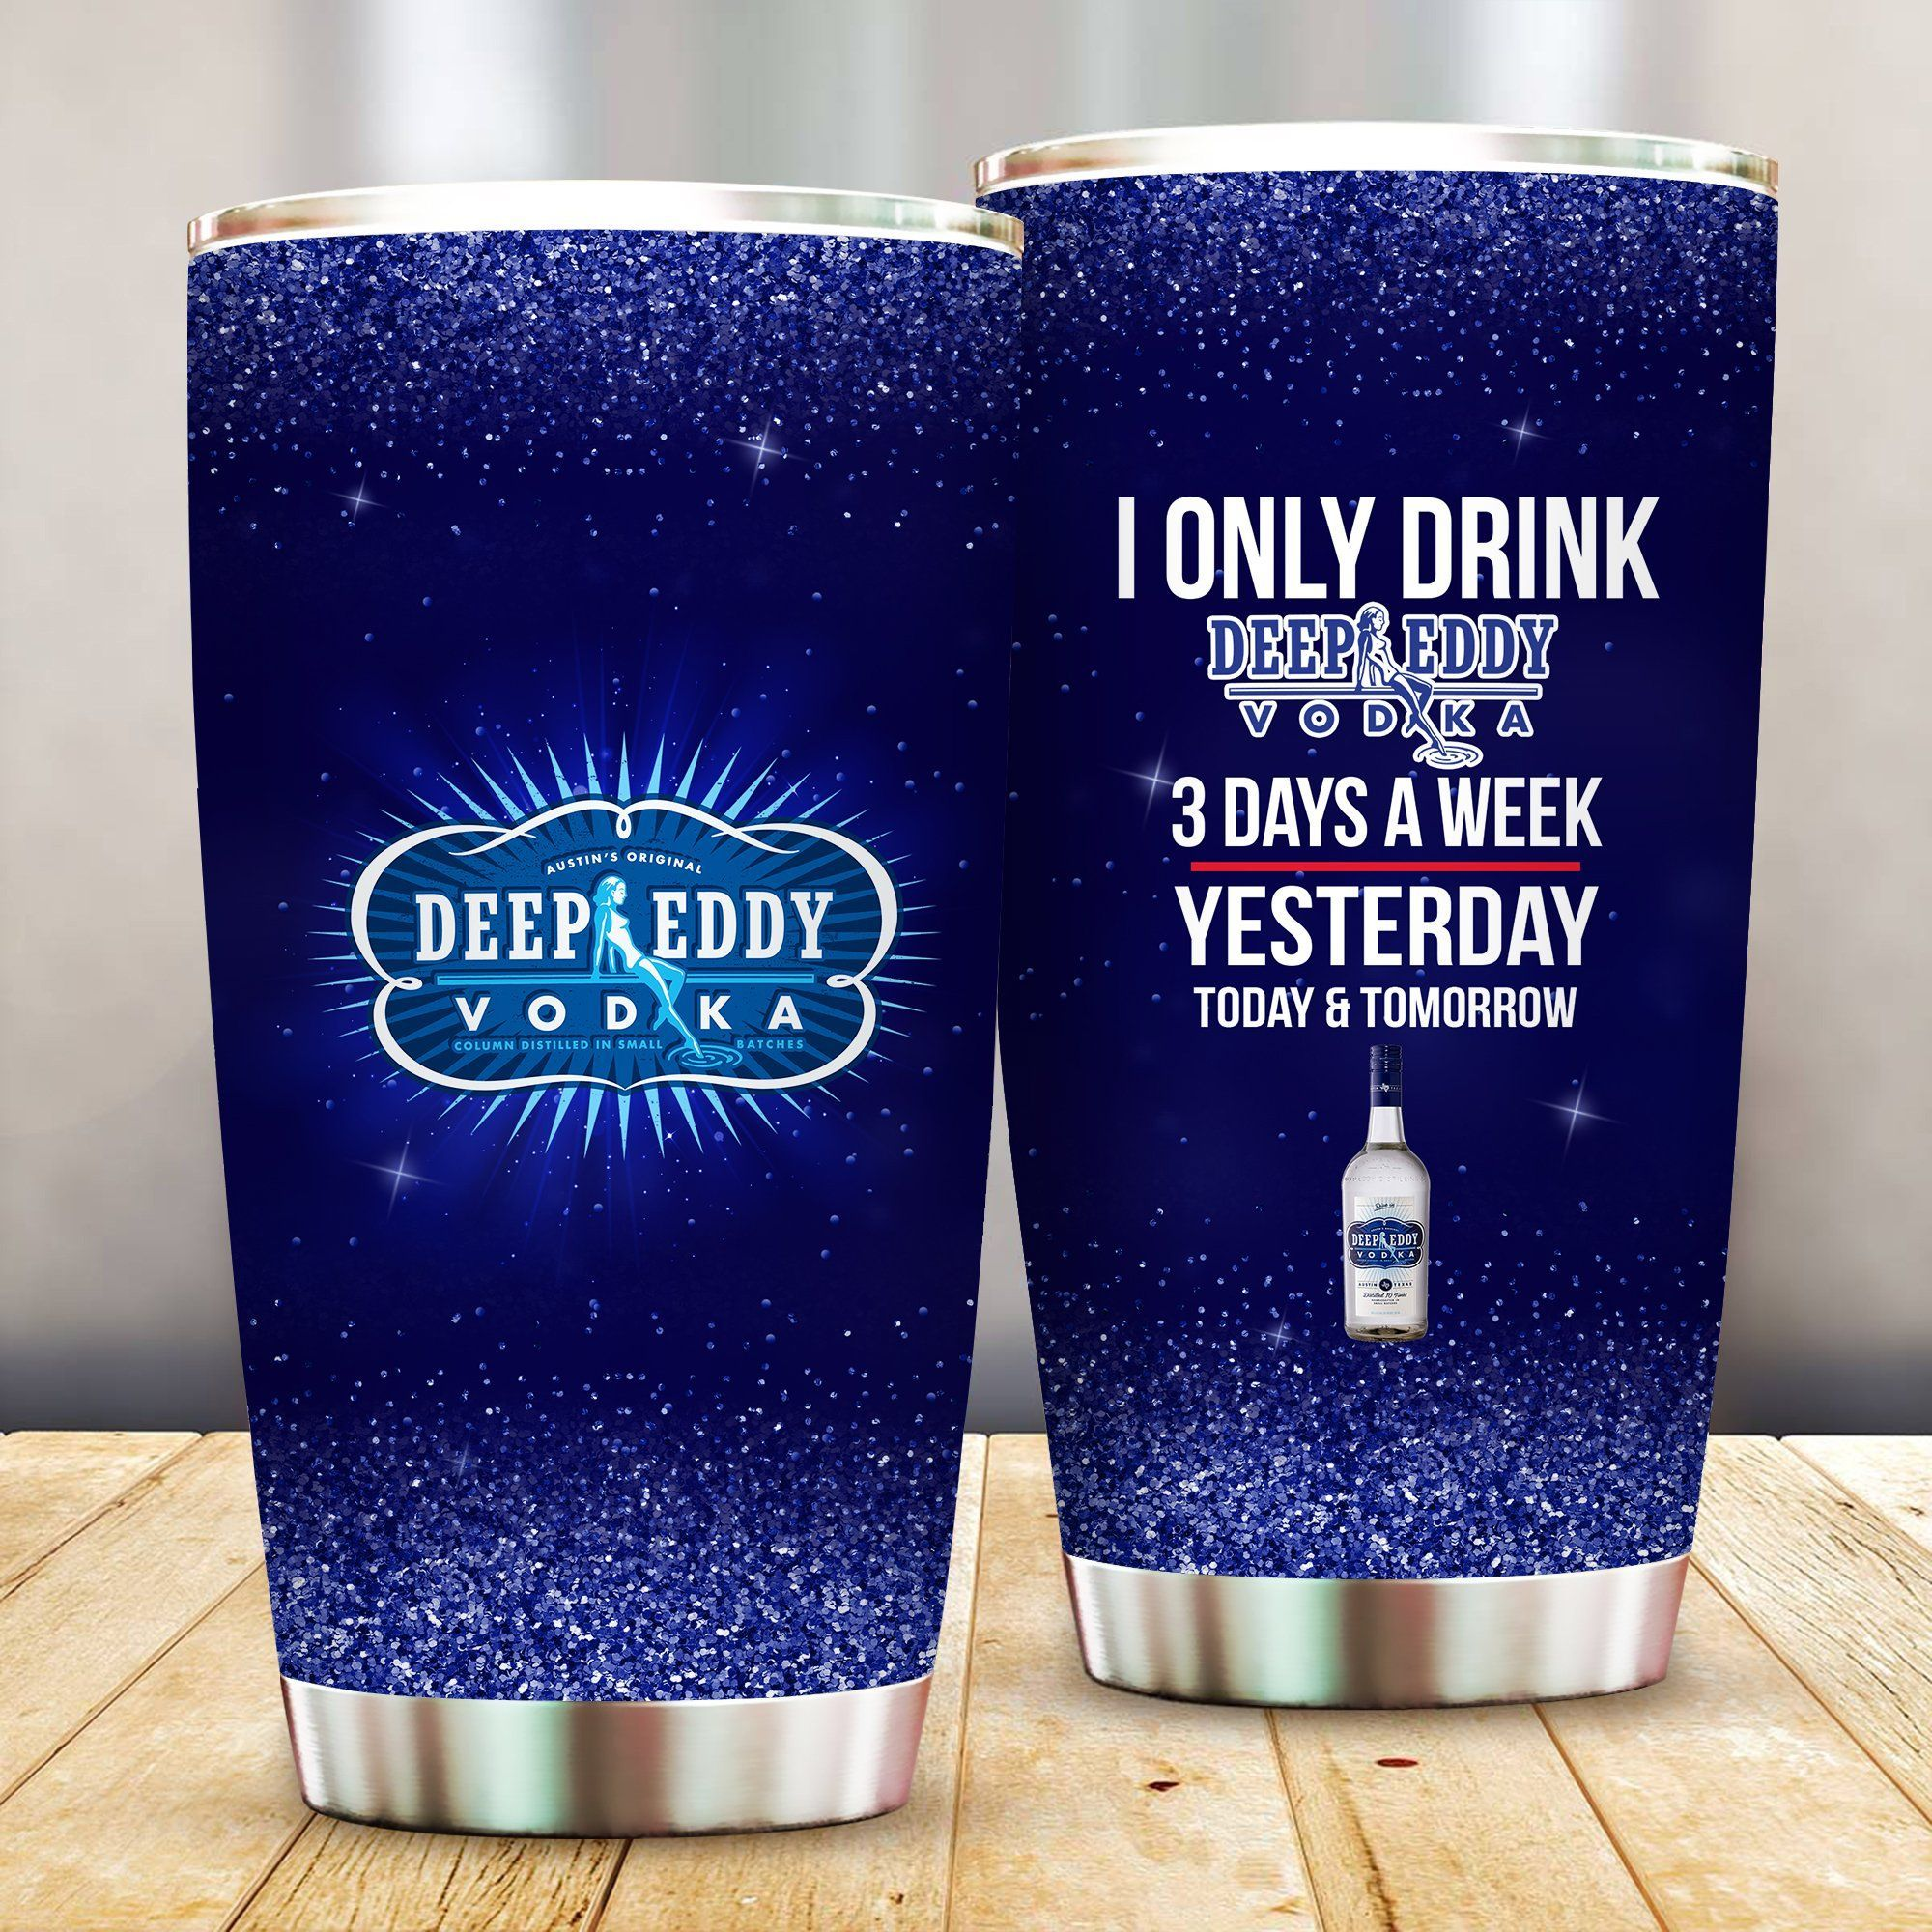 I Only Drink Deep Eddy Vodka 3 Days A Week Yesterday Today and Tomorrow - Funny Customized Tumbler Cup Unisex Tshirt